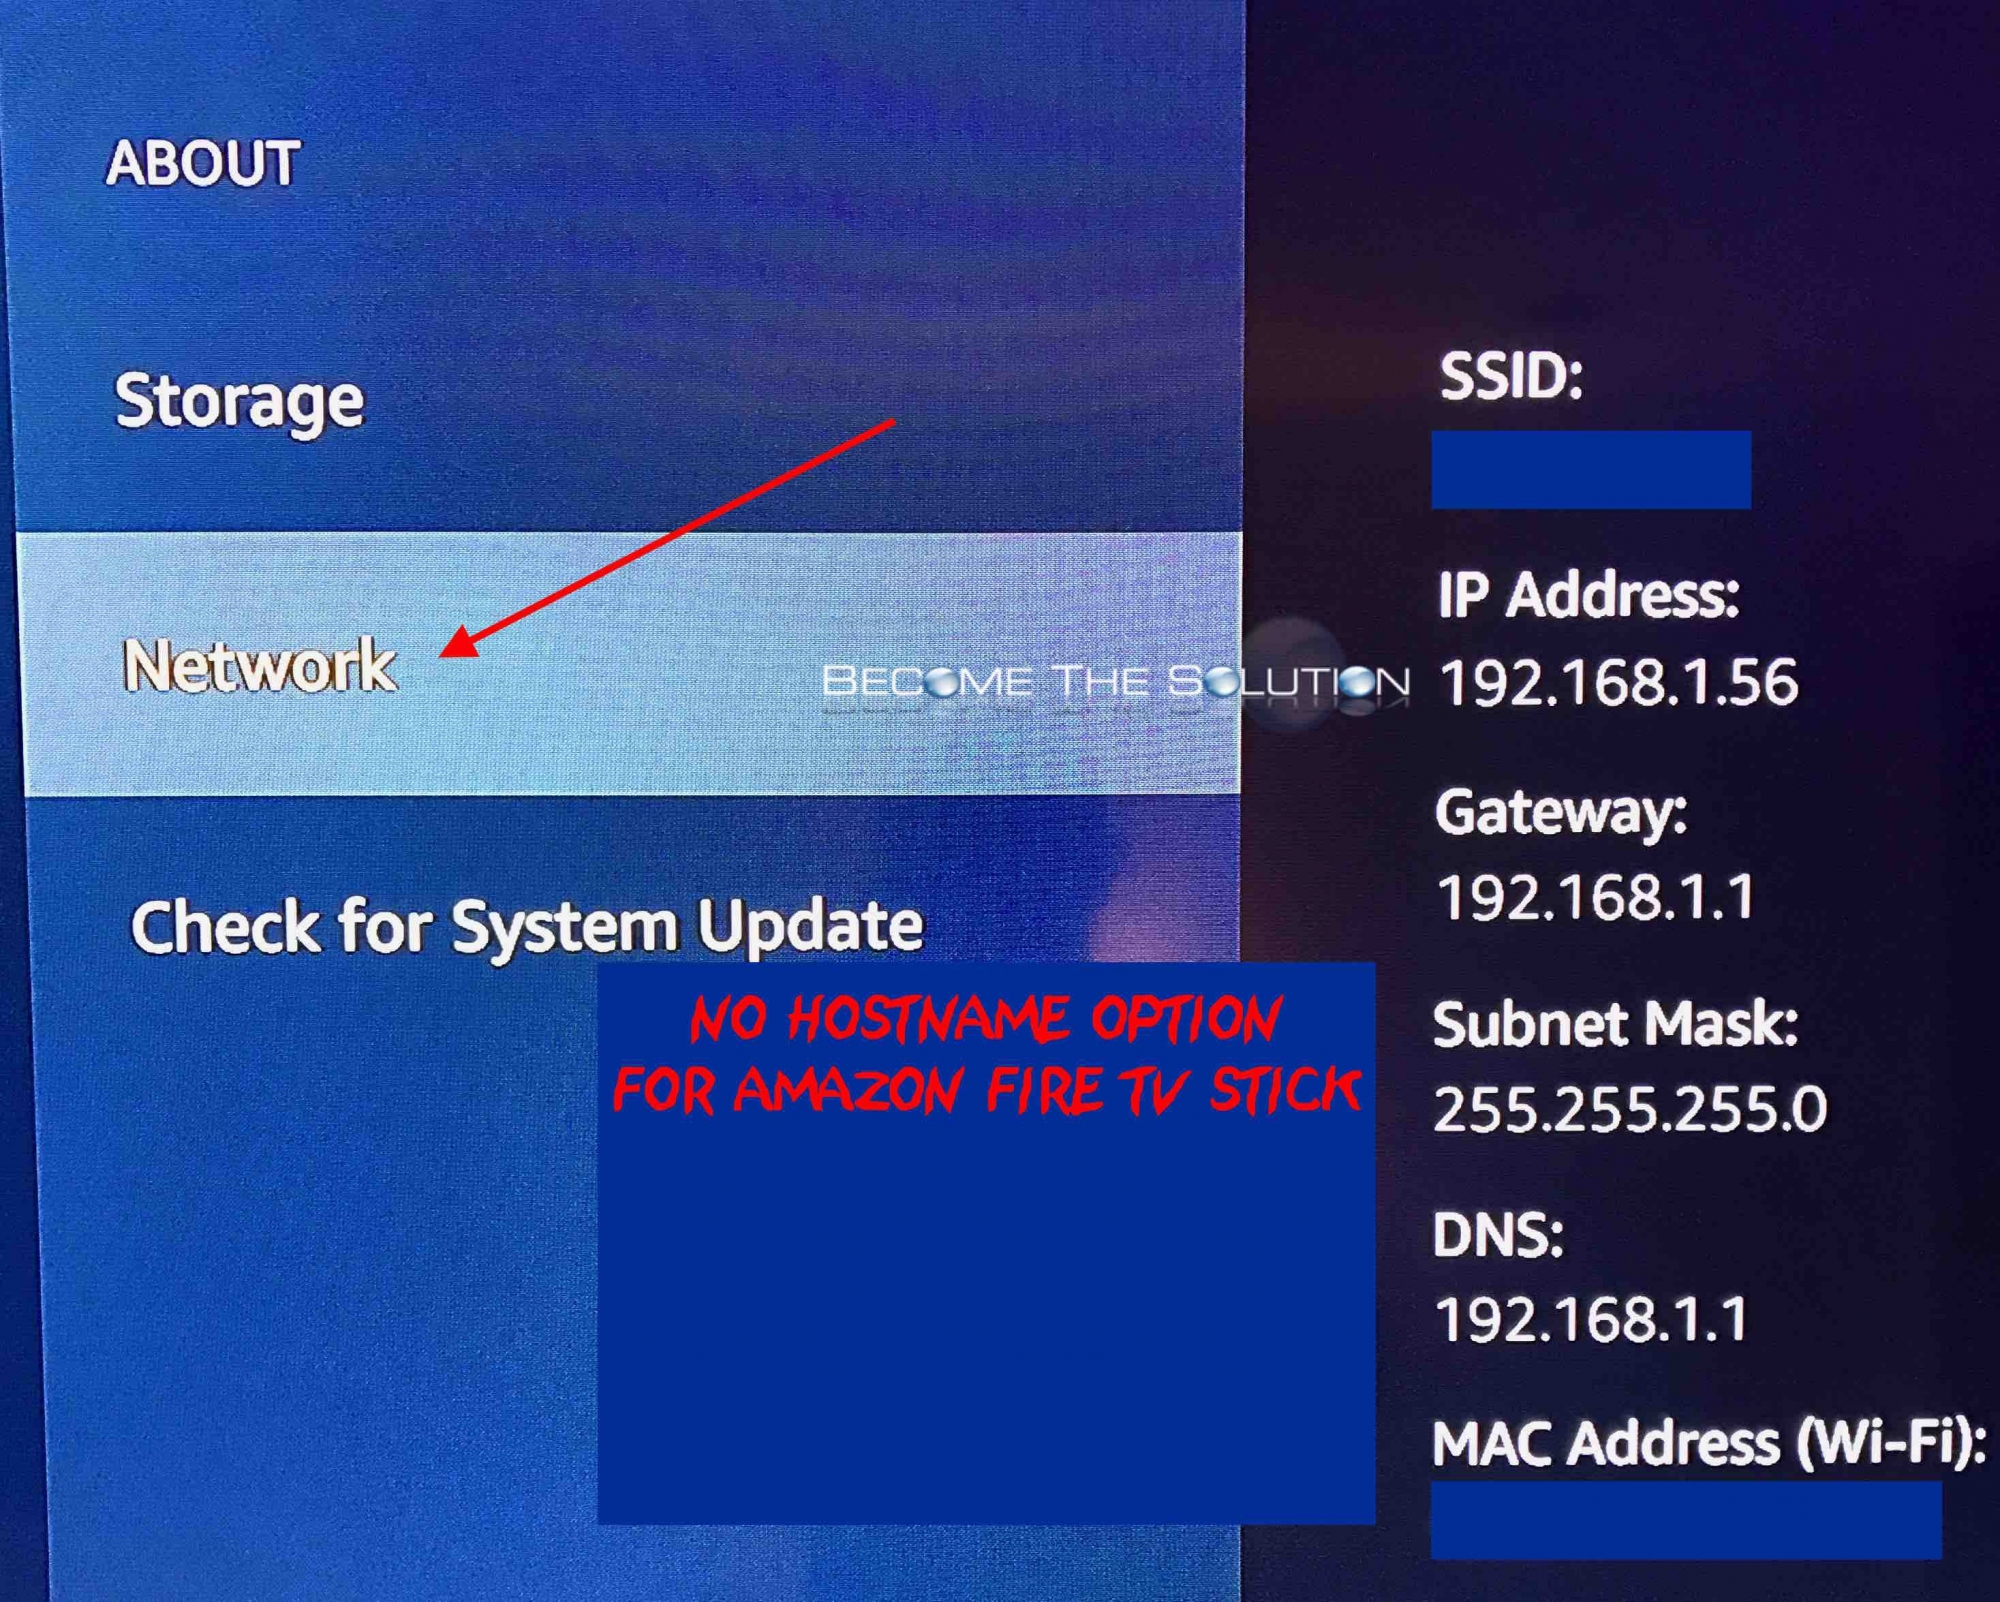 Amazon fire tv stick network hostname